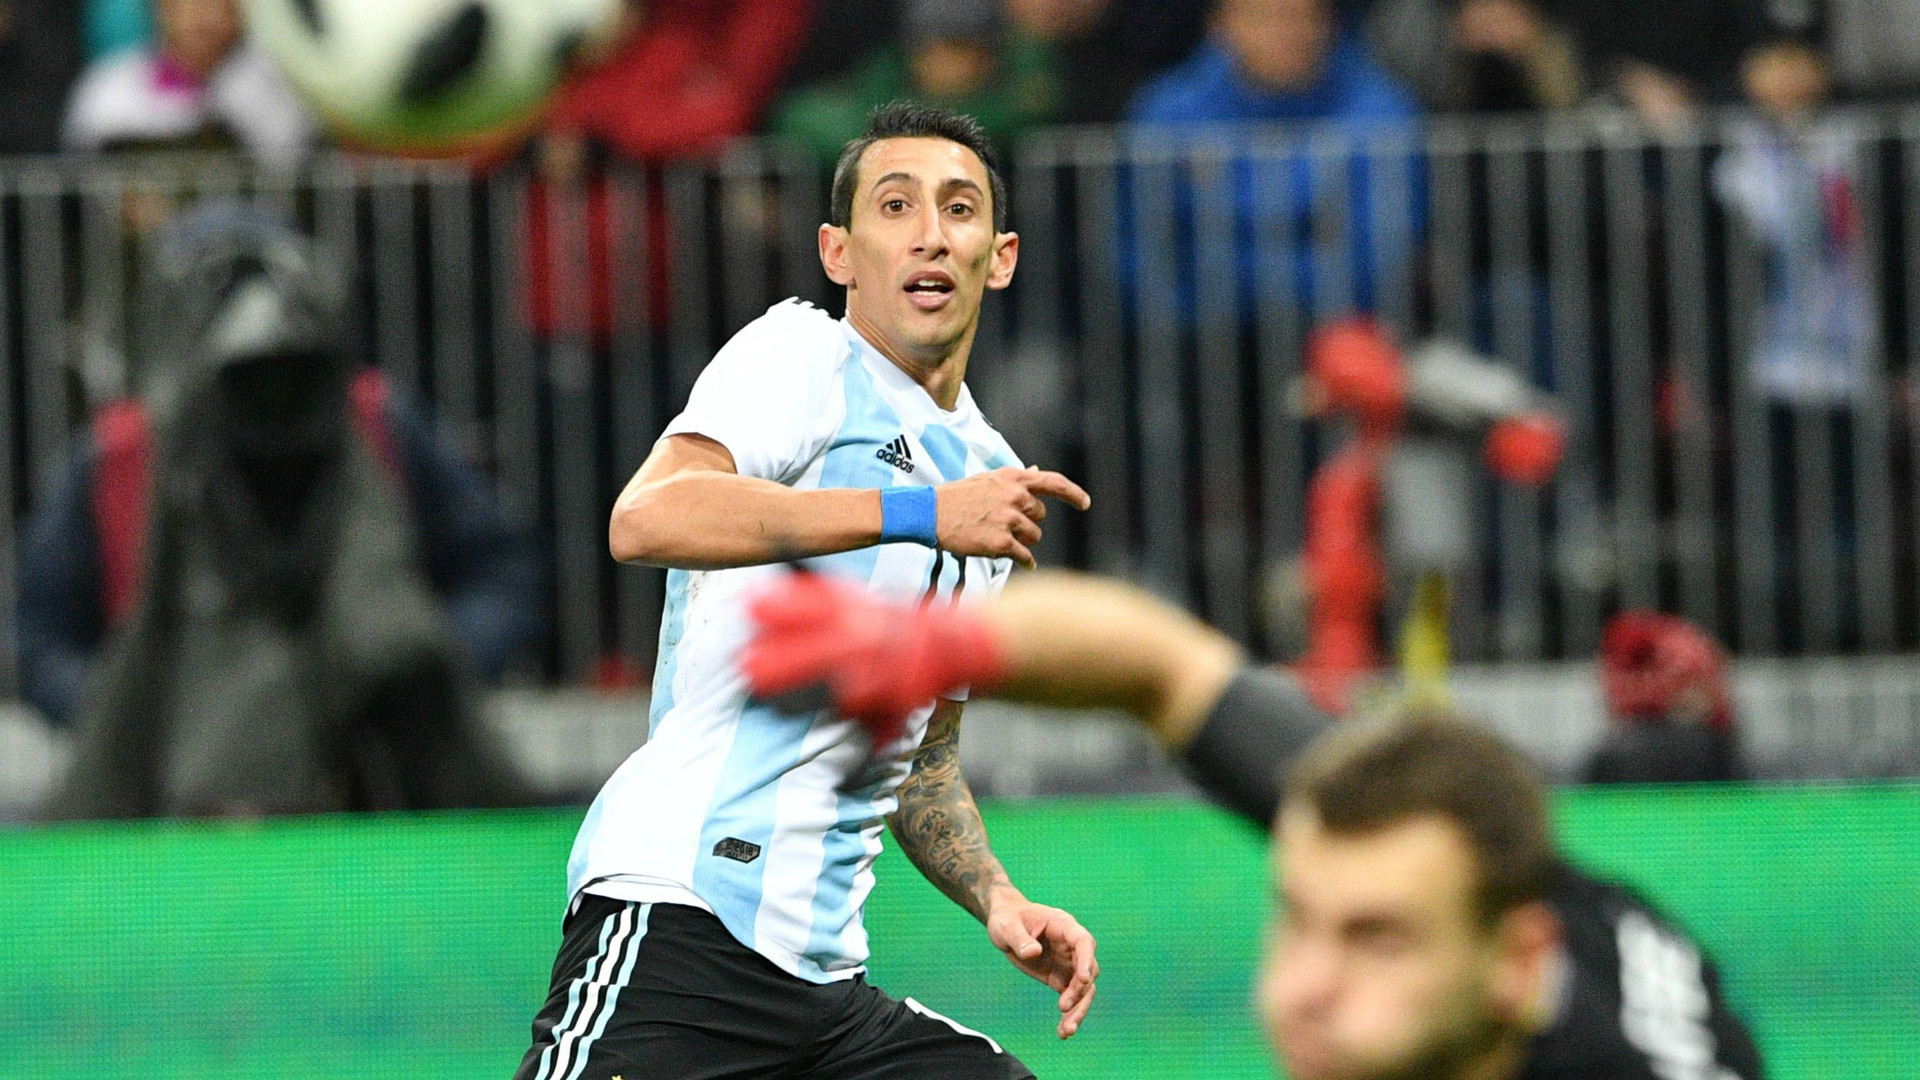 Argentina vs Nigeria: Sergio Aguero collapsed, rushed to hospital